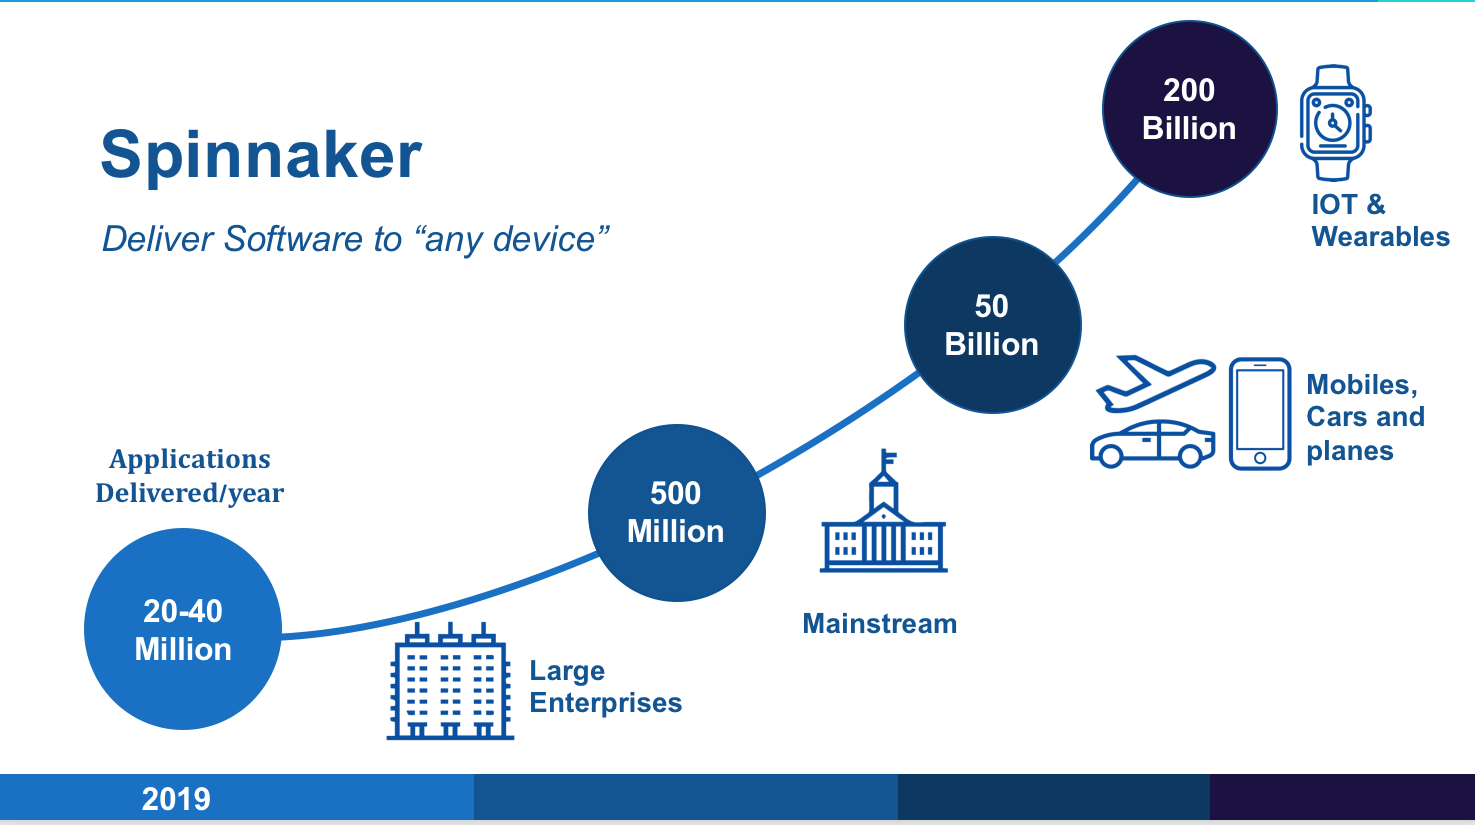 Spinnaker - Deliver Software to any device